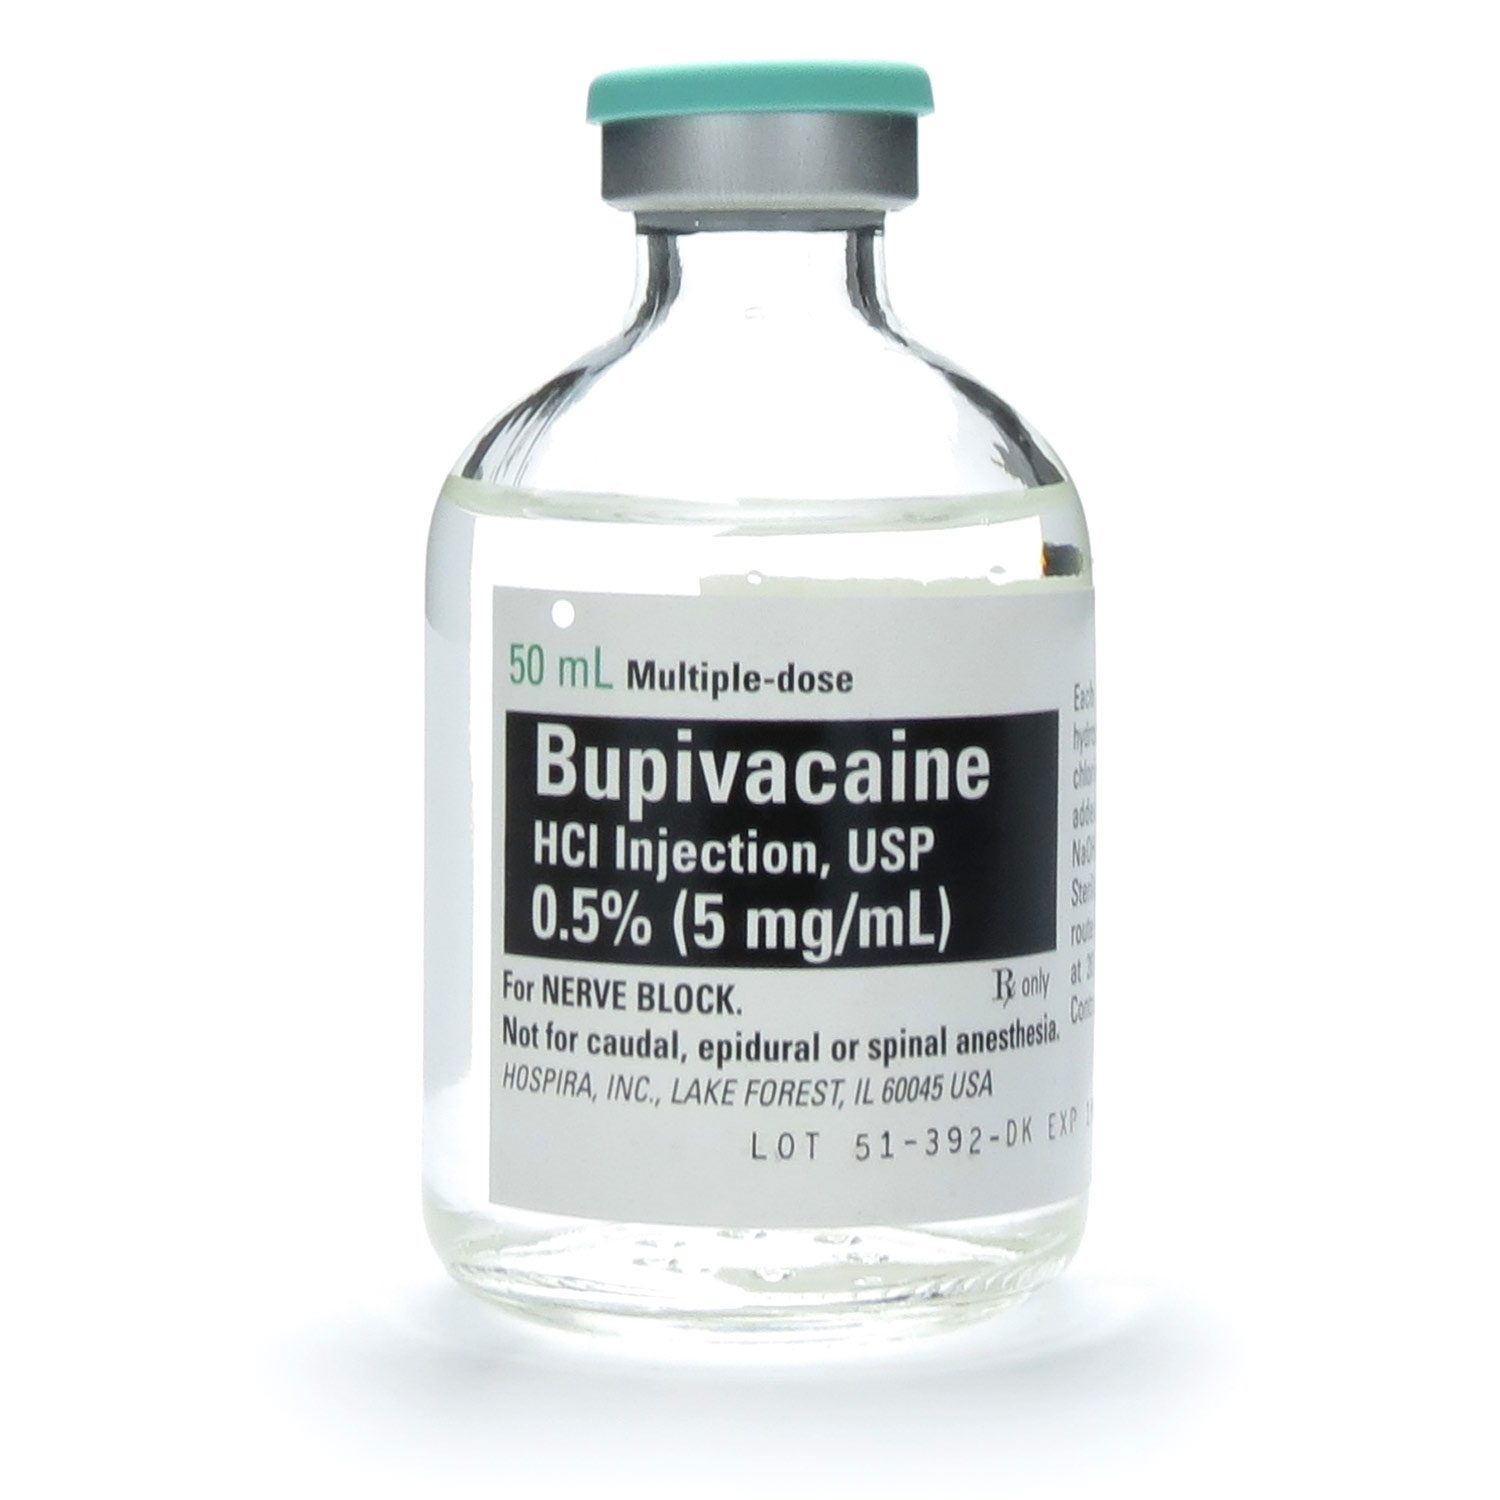 Bupivacaine, 0.5%, 5mg/mL, MDV, 50mL/Vial | McGuff Medical